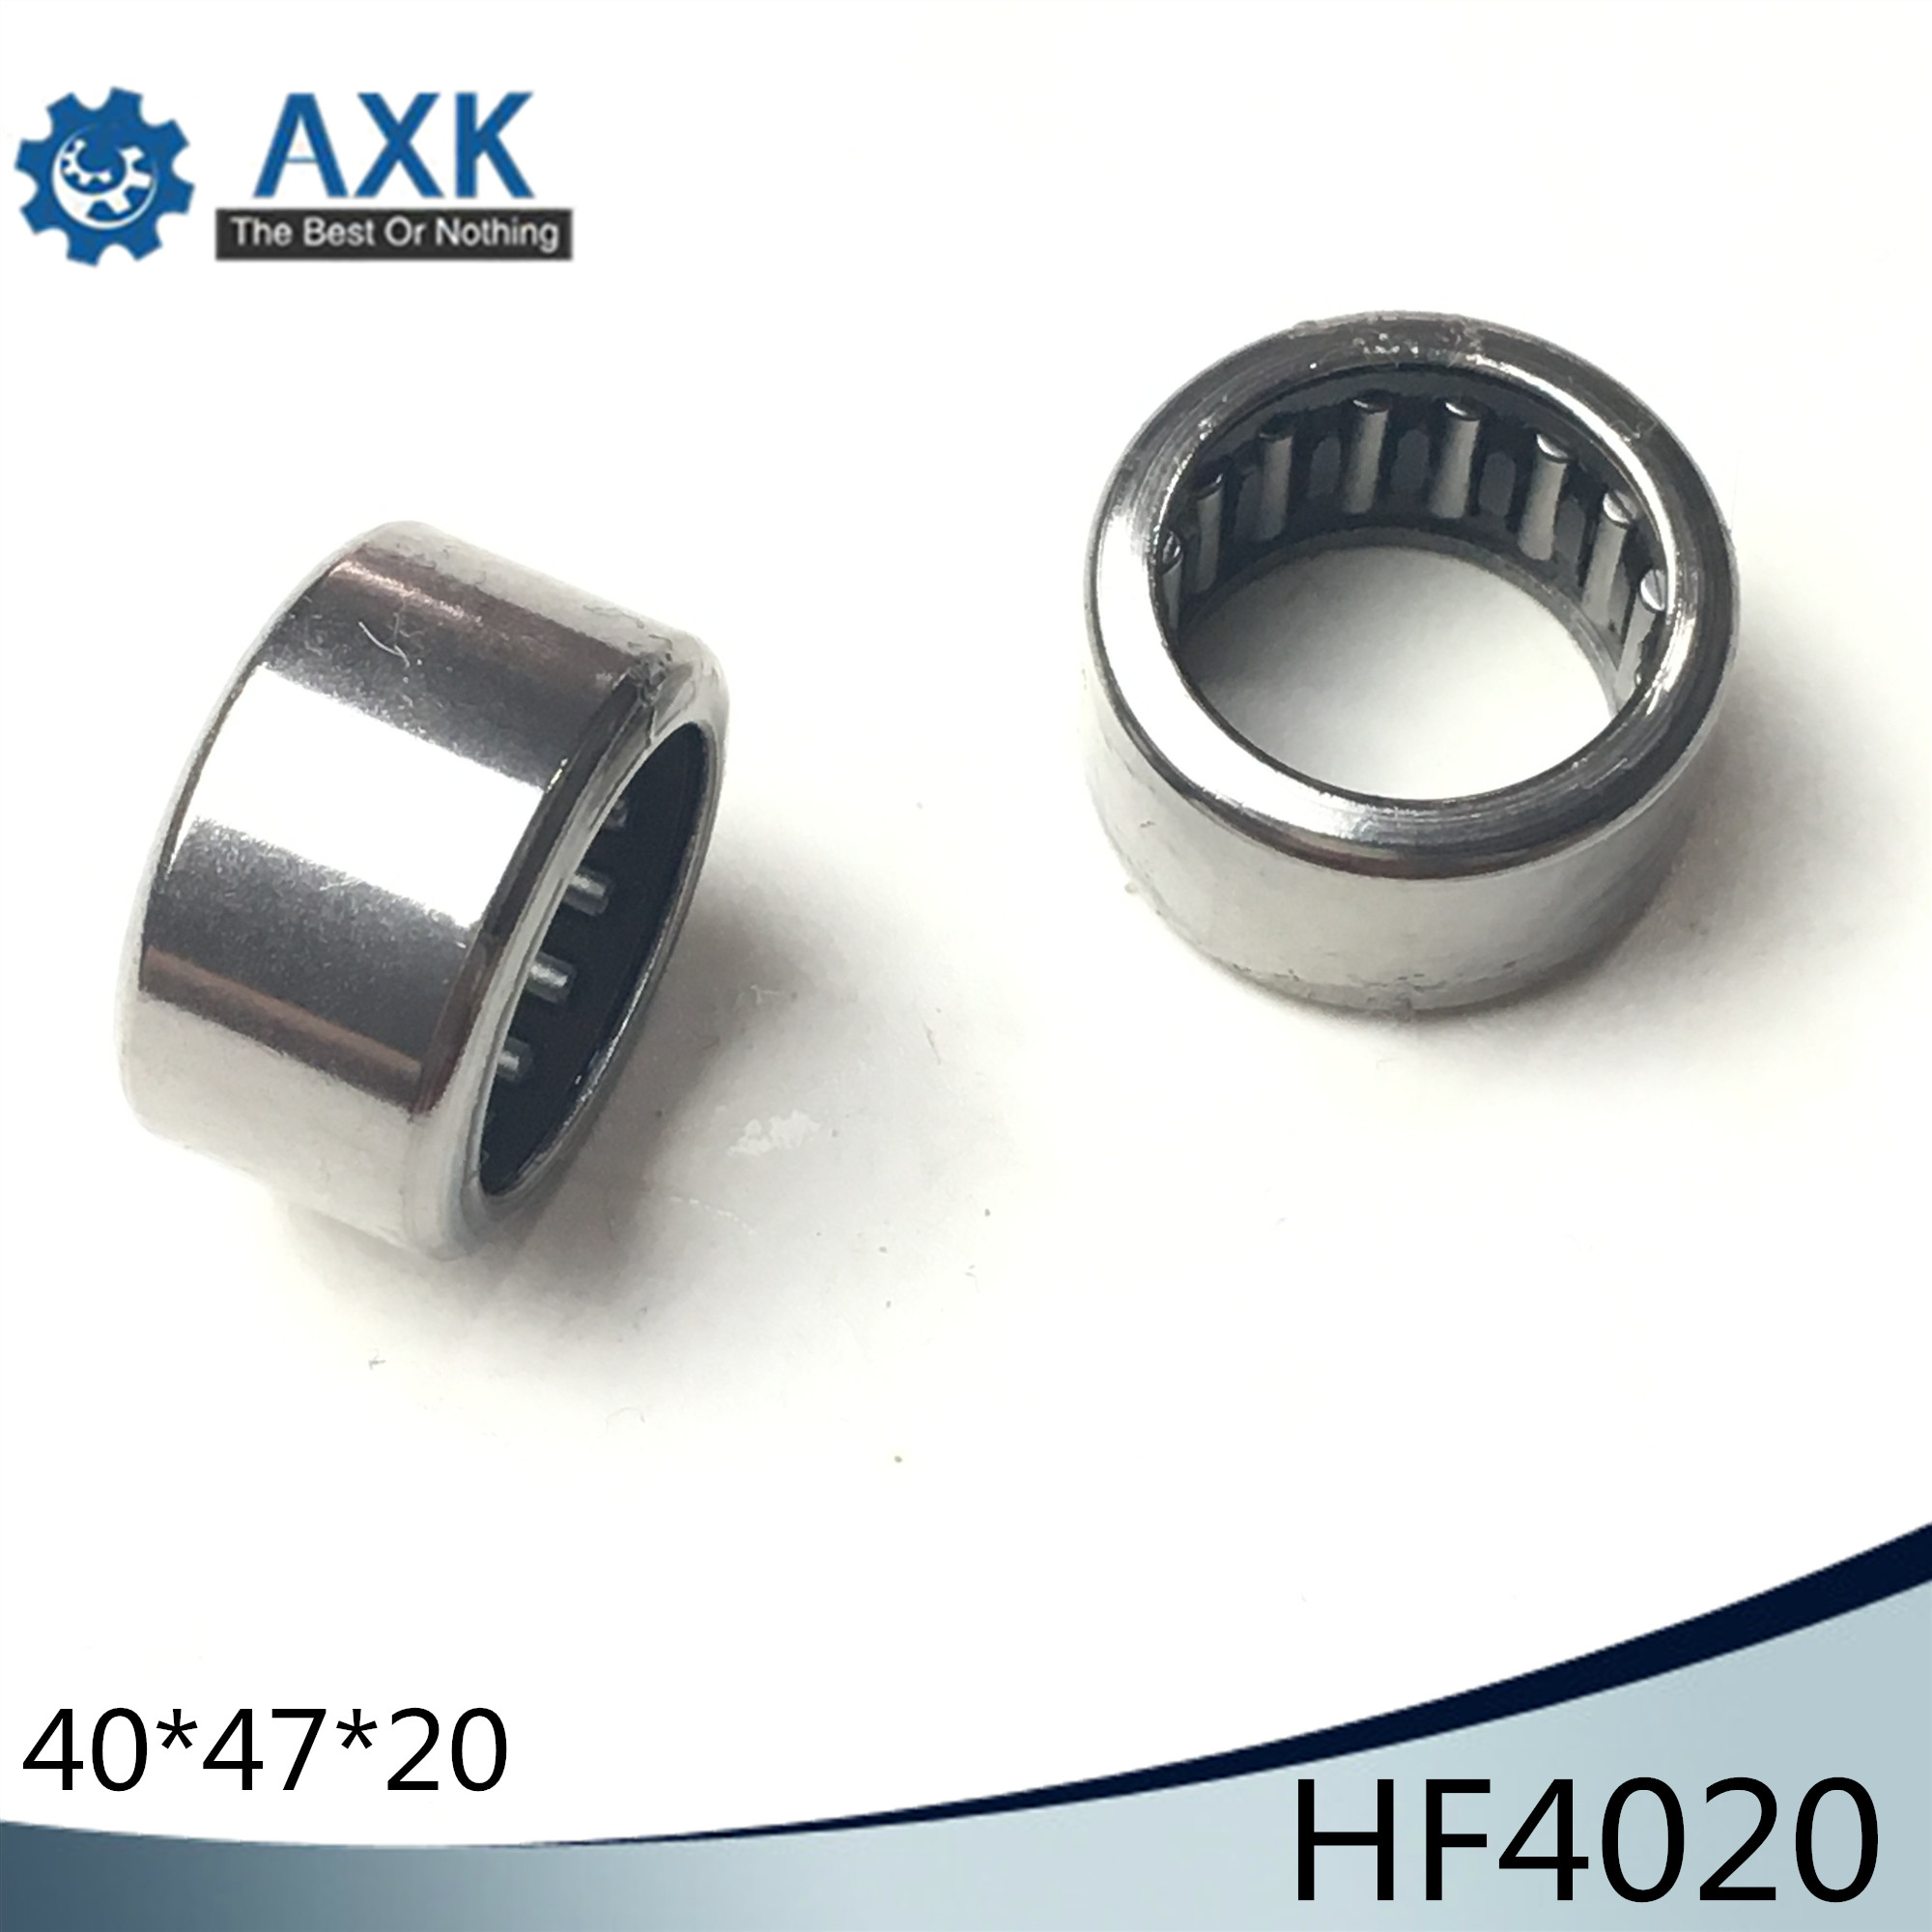 HFL1226 Bearing 12*18*26 mm 5 PC Drawn Cup Needle Roller Clutch FCB-12